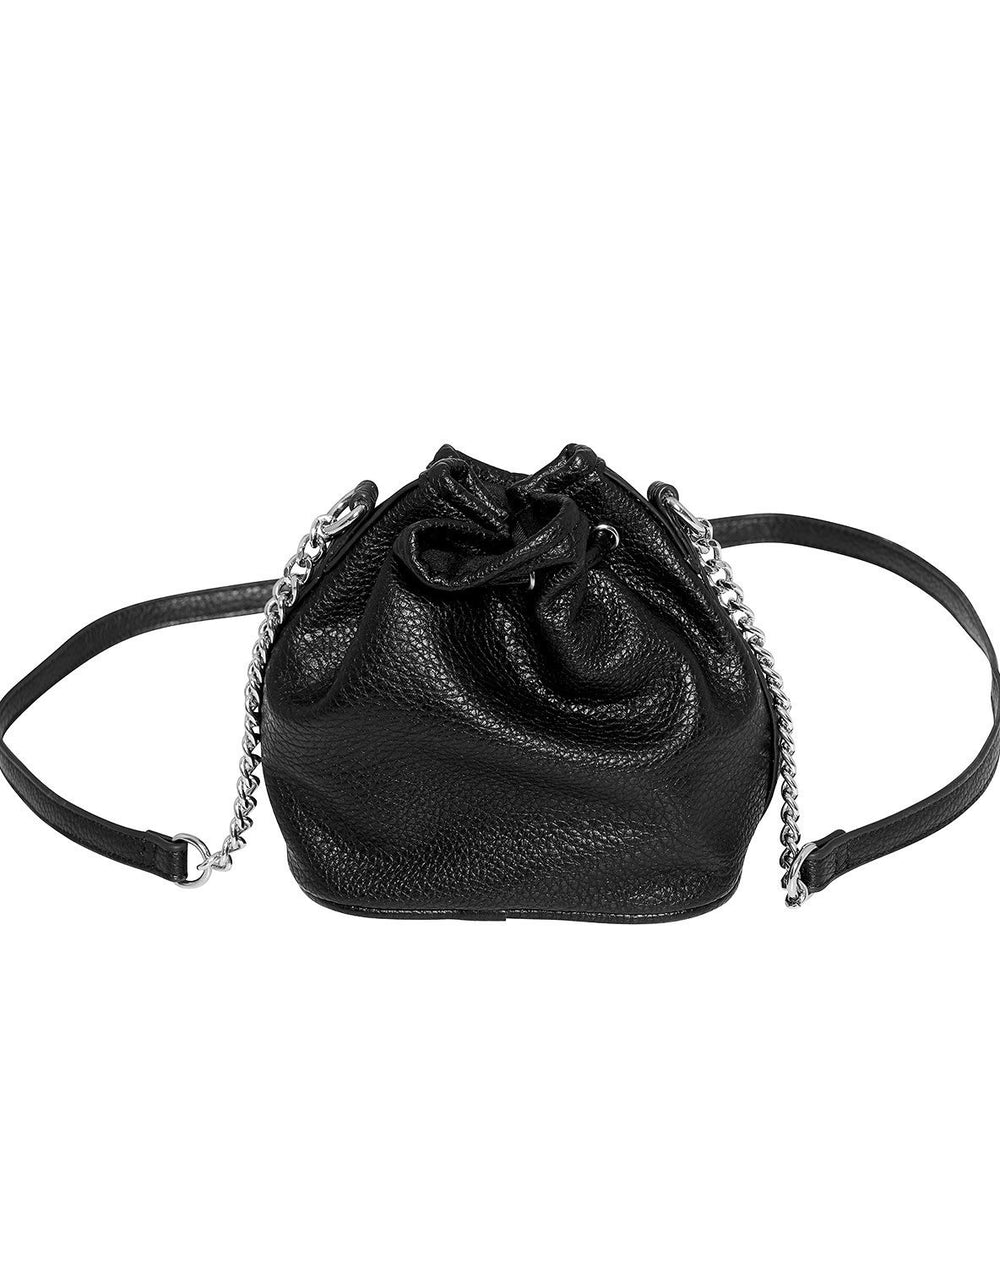 Noella Silja bag small black nappa look - Online-Mode